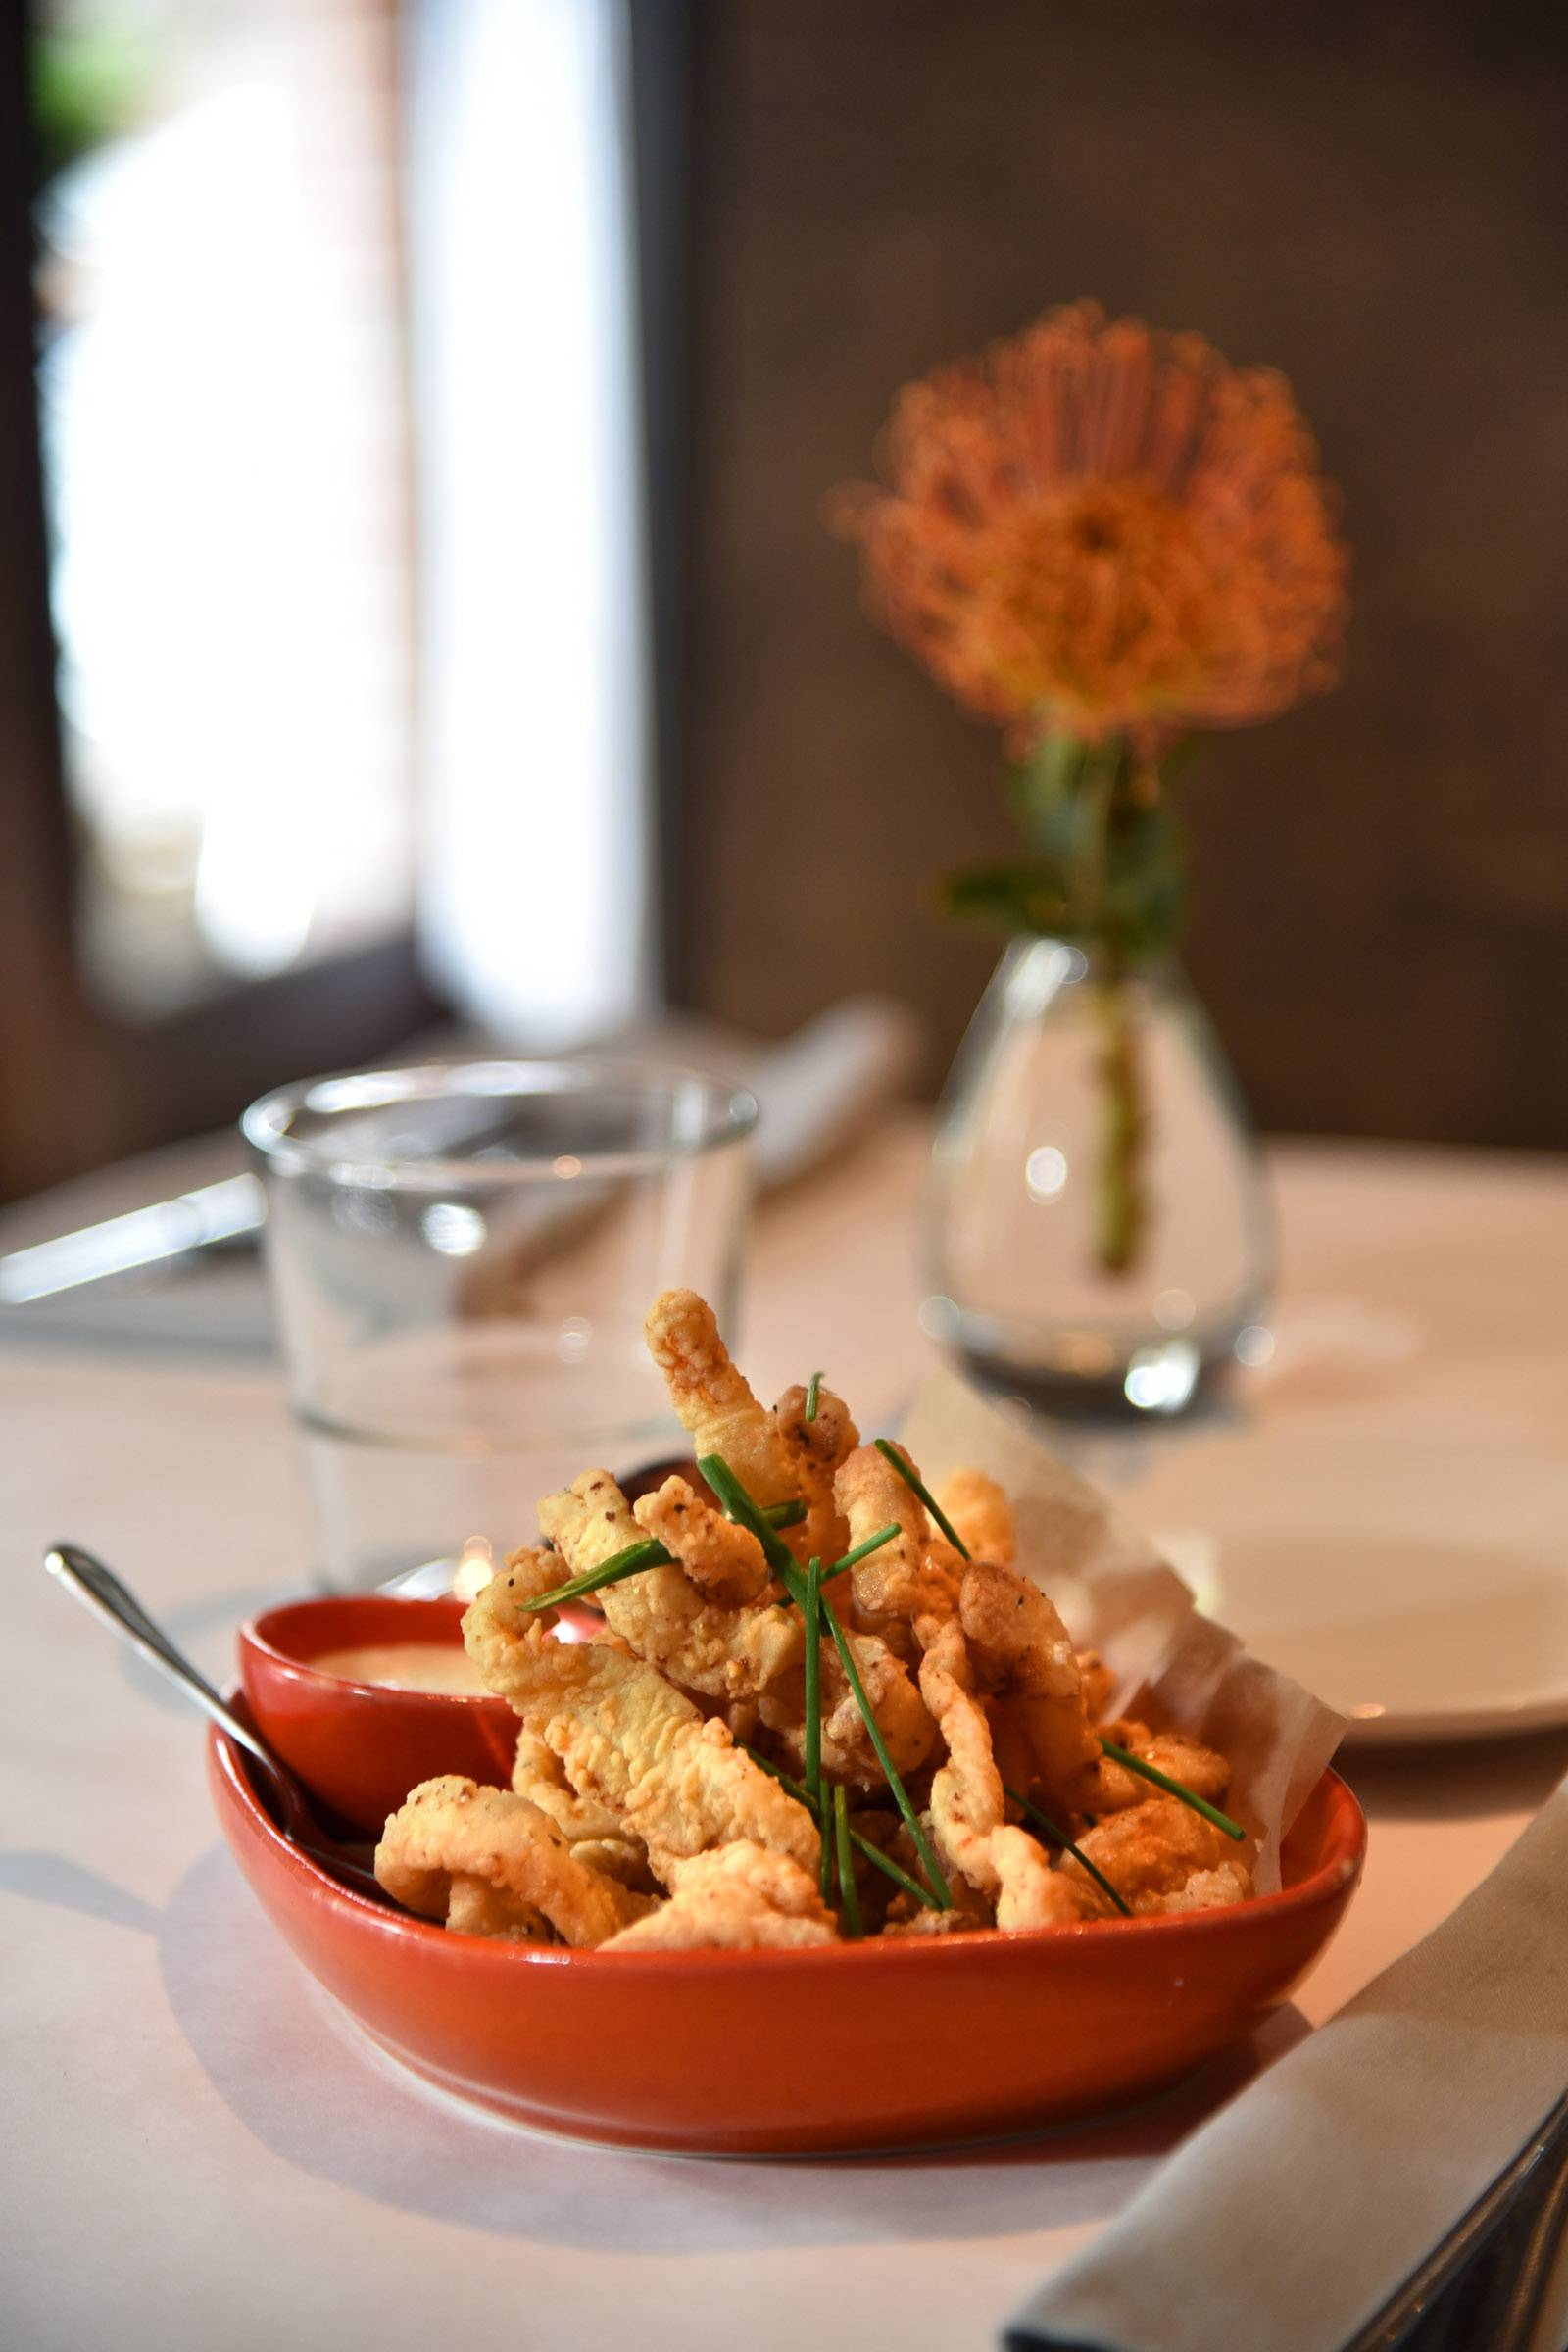 Calamari and Shrimp Fritto pairs the two seafood favorites with a lemon aioli at Livia Italian Eatery in Geneva.